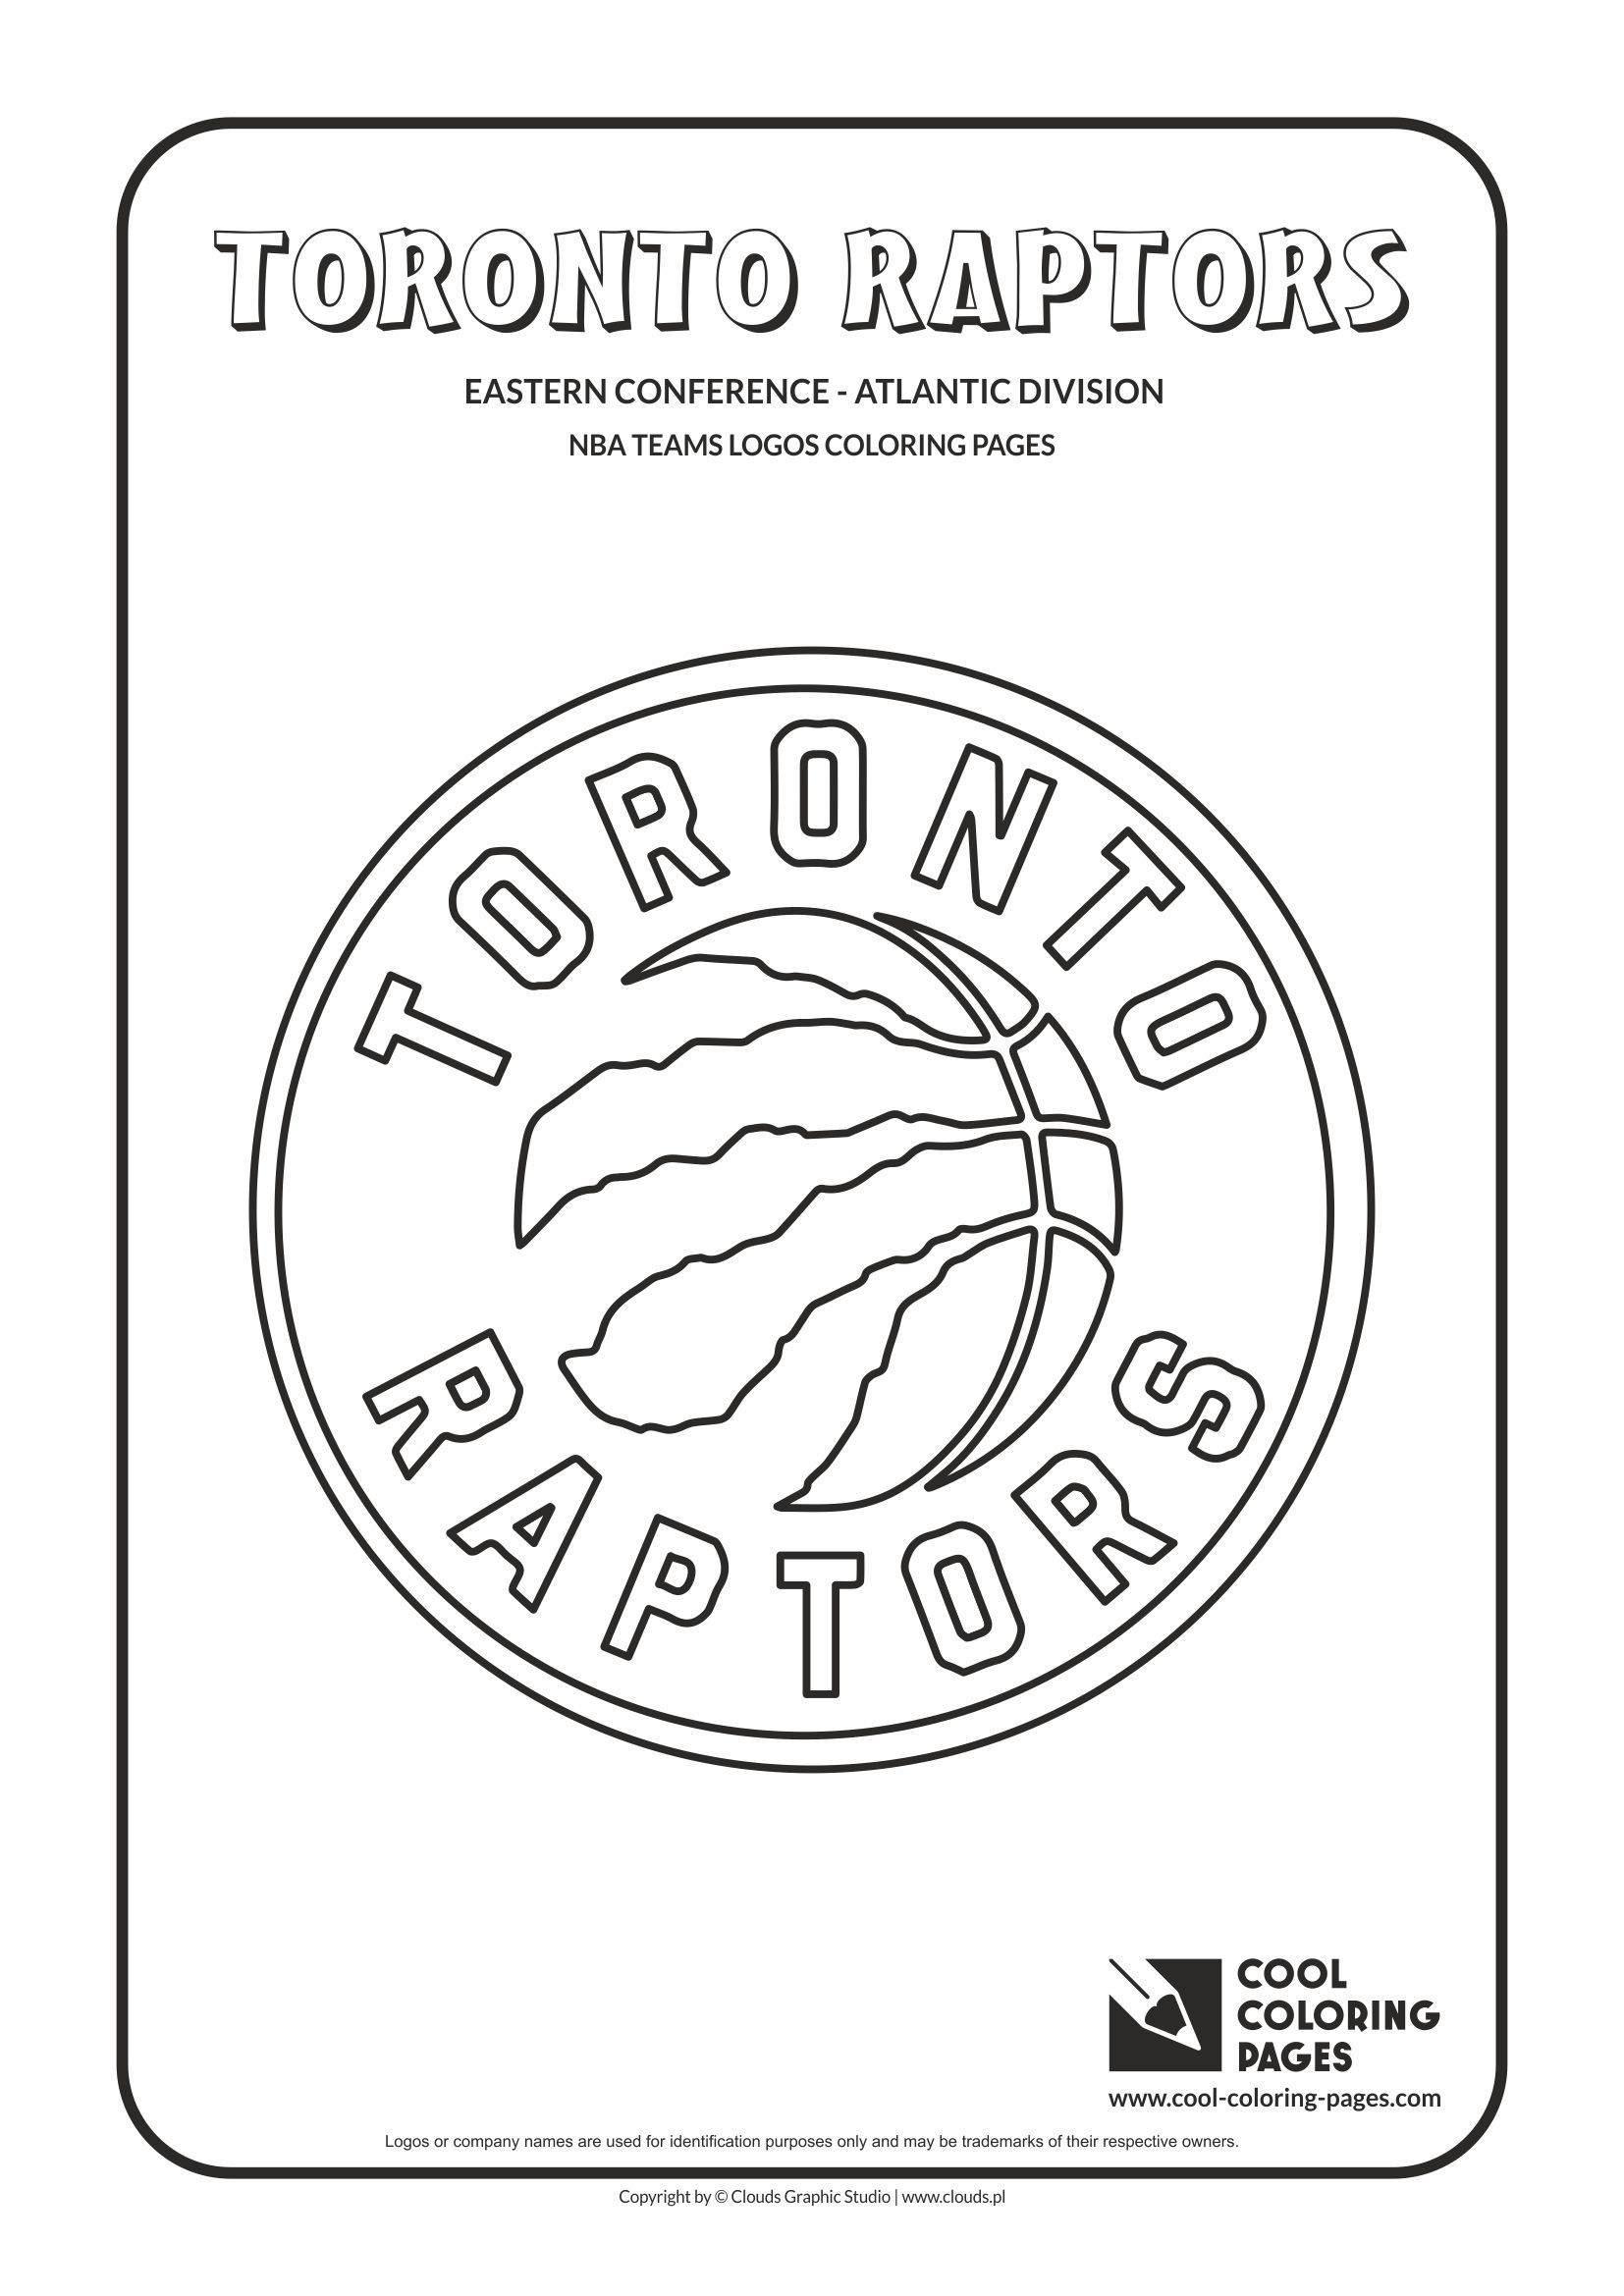 Cool Coloring Pages Nba Basketball Clubs Logos Eastern Conference Atlantic Division Toronto Raptors Logo C Cool Coloring Pages Raptors Coloring Pages